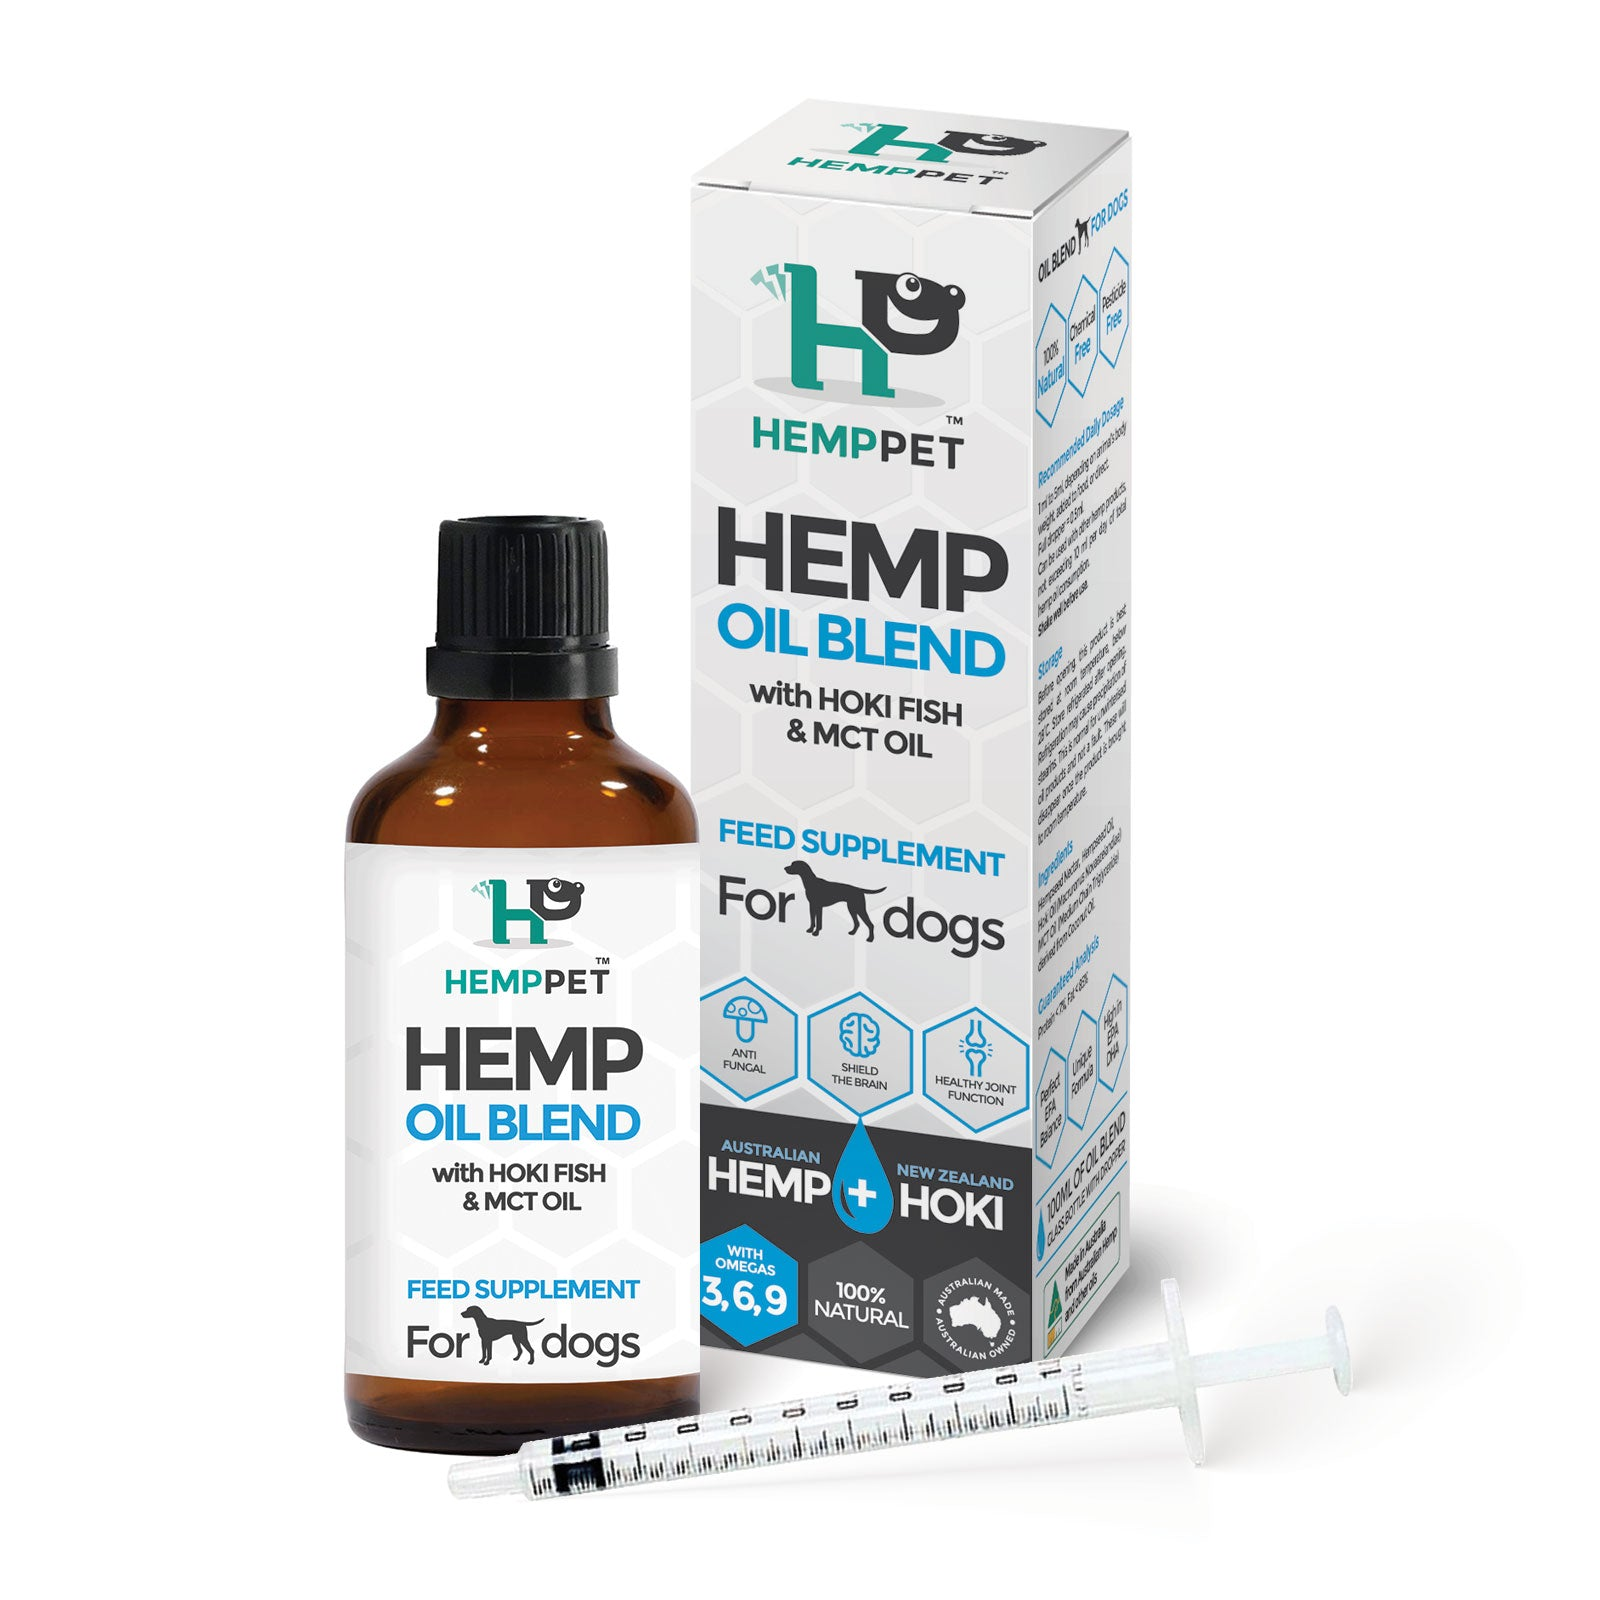 HempPet, Hemp Oil Blend with Hoki Fish and MCT oil for Dogs, Omega 369, DHA, EPA, dog skin issues and anxiety